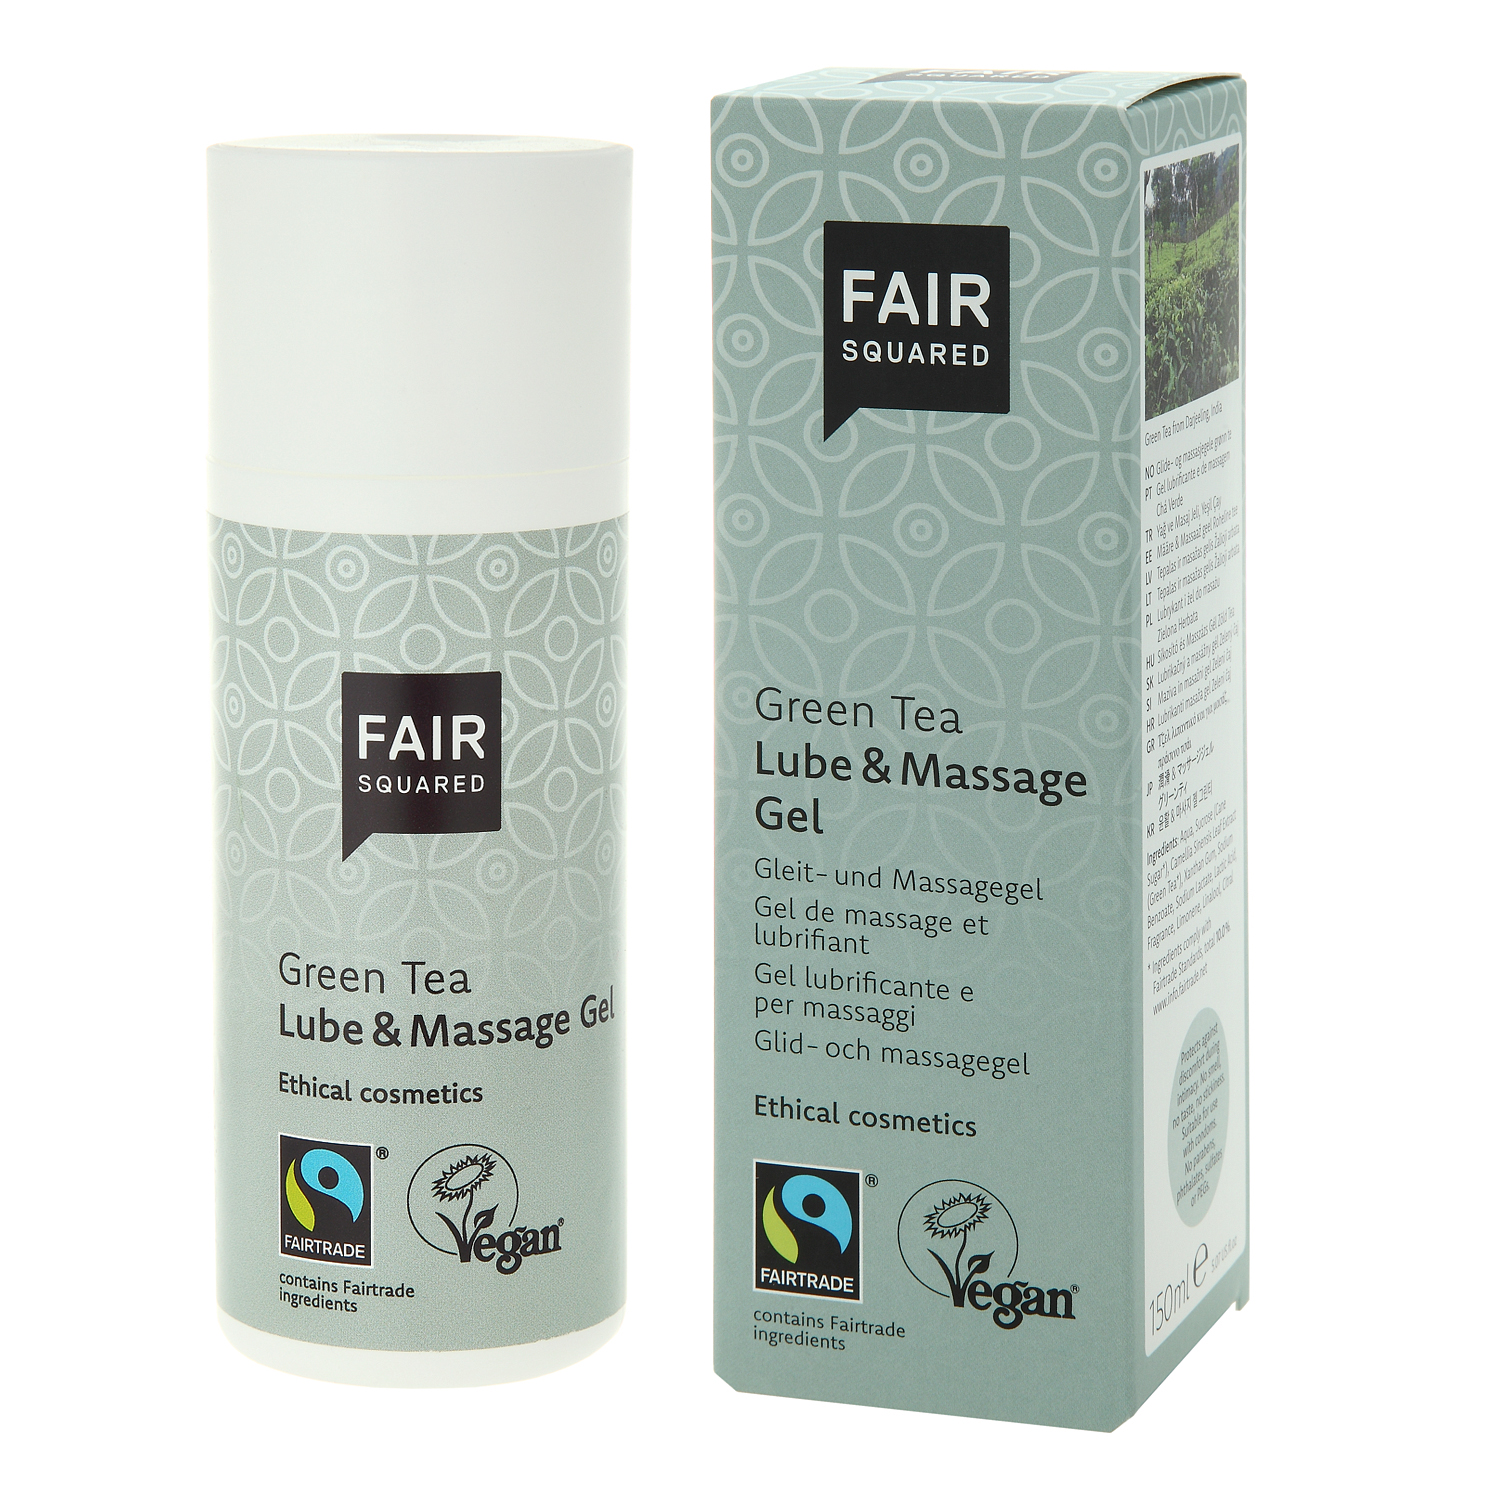 Lube & Massage Gel Green Tea